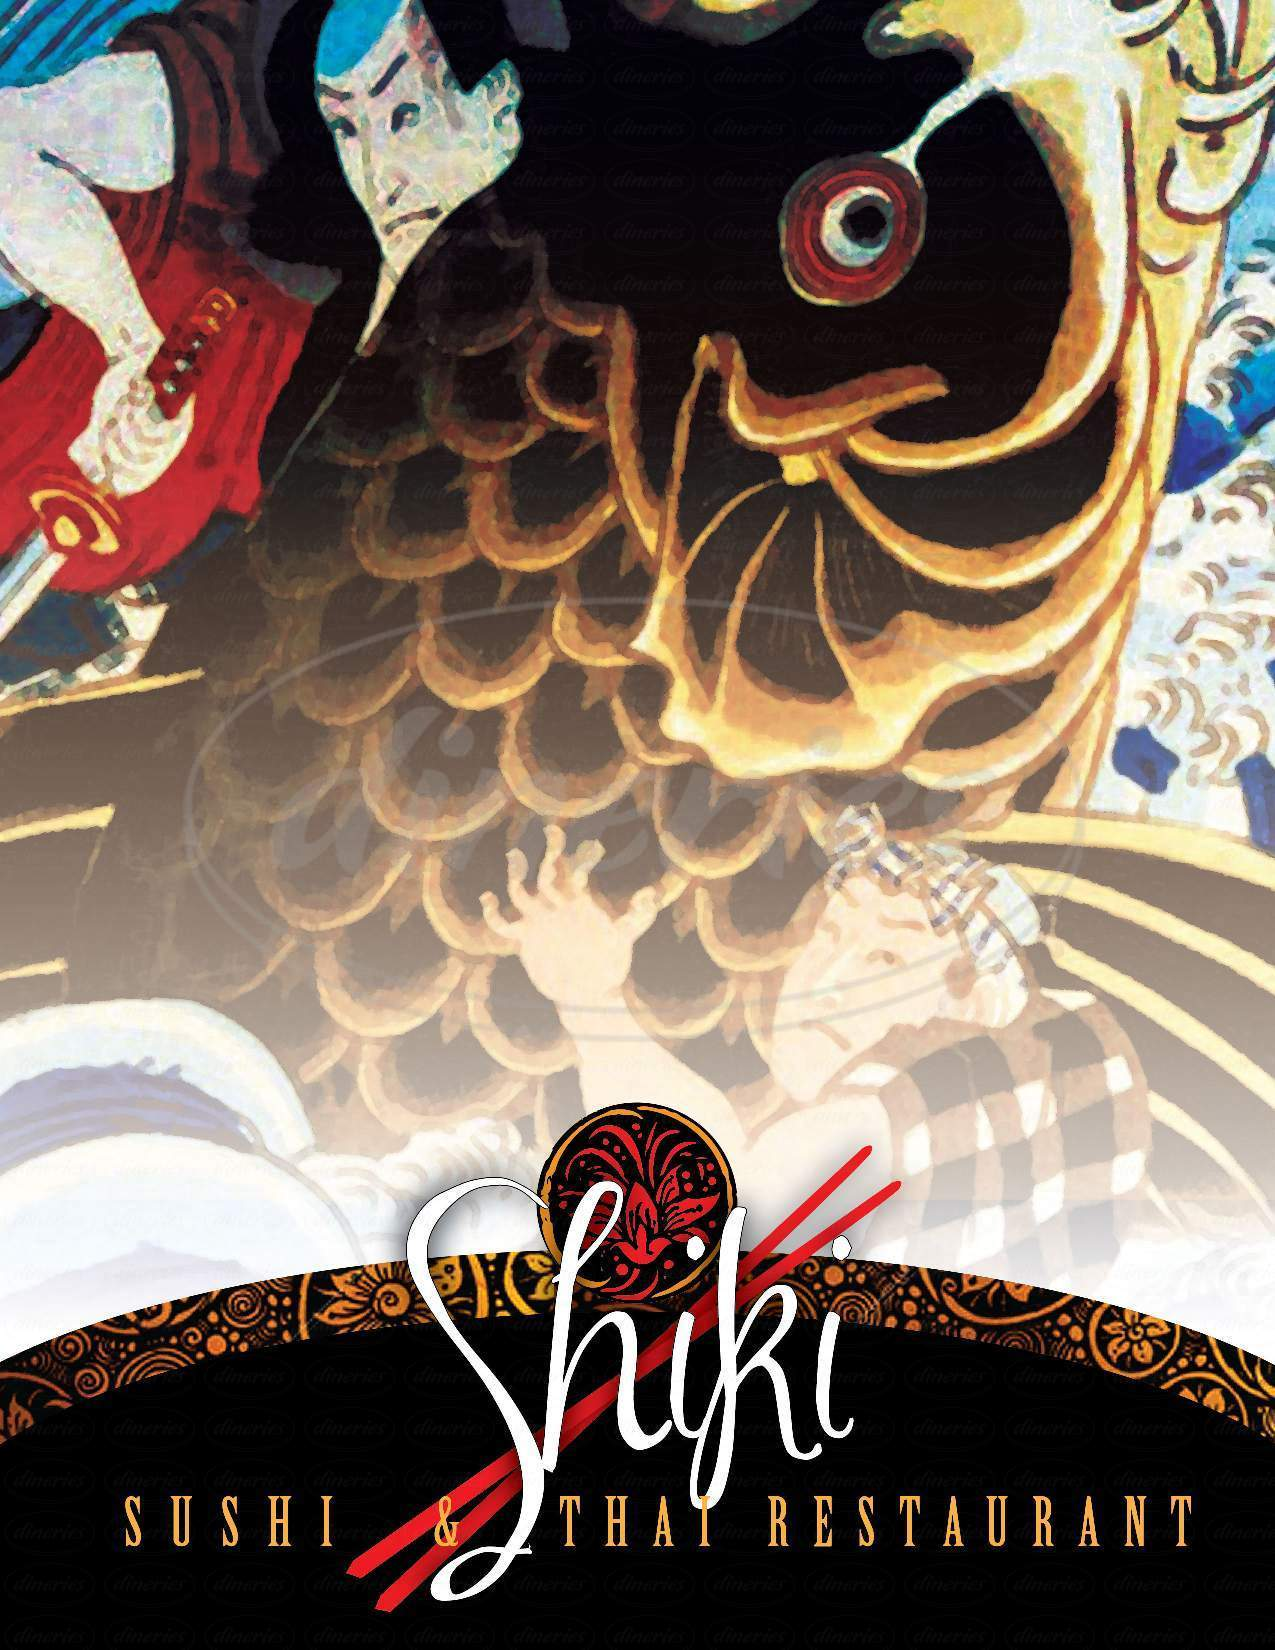 menu for Shiki Sushi Bar & Thai Restaurant